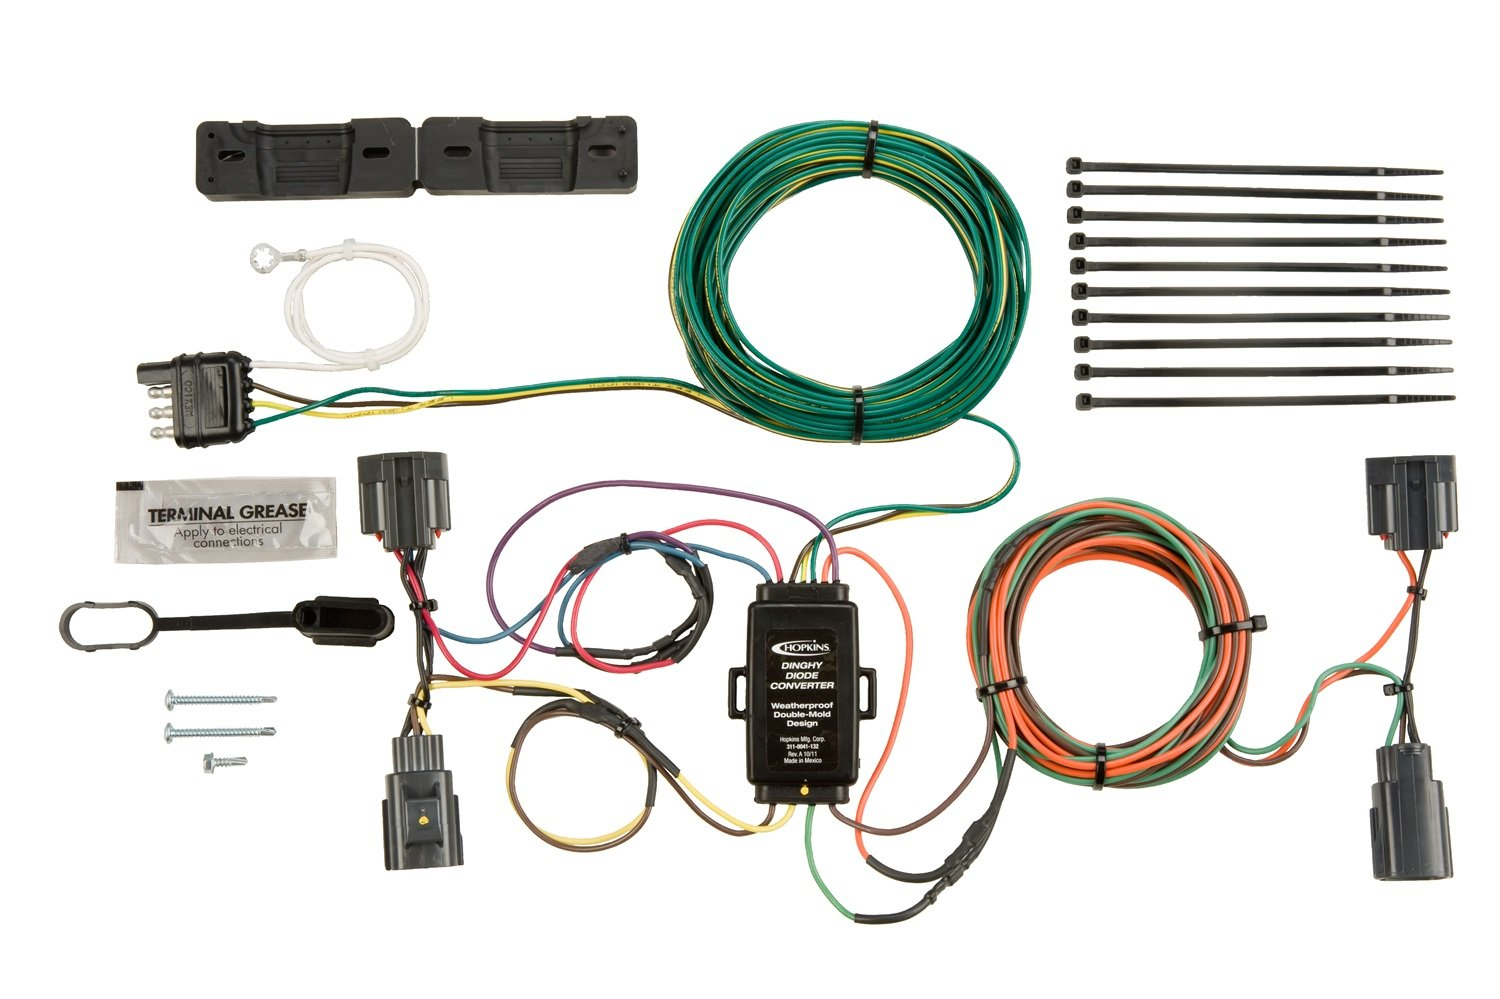 Hopkins 56200 Plug In Simple Towed Vehicle Wiring Kit California Trailer Diagram Automotive